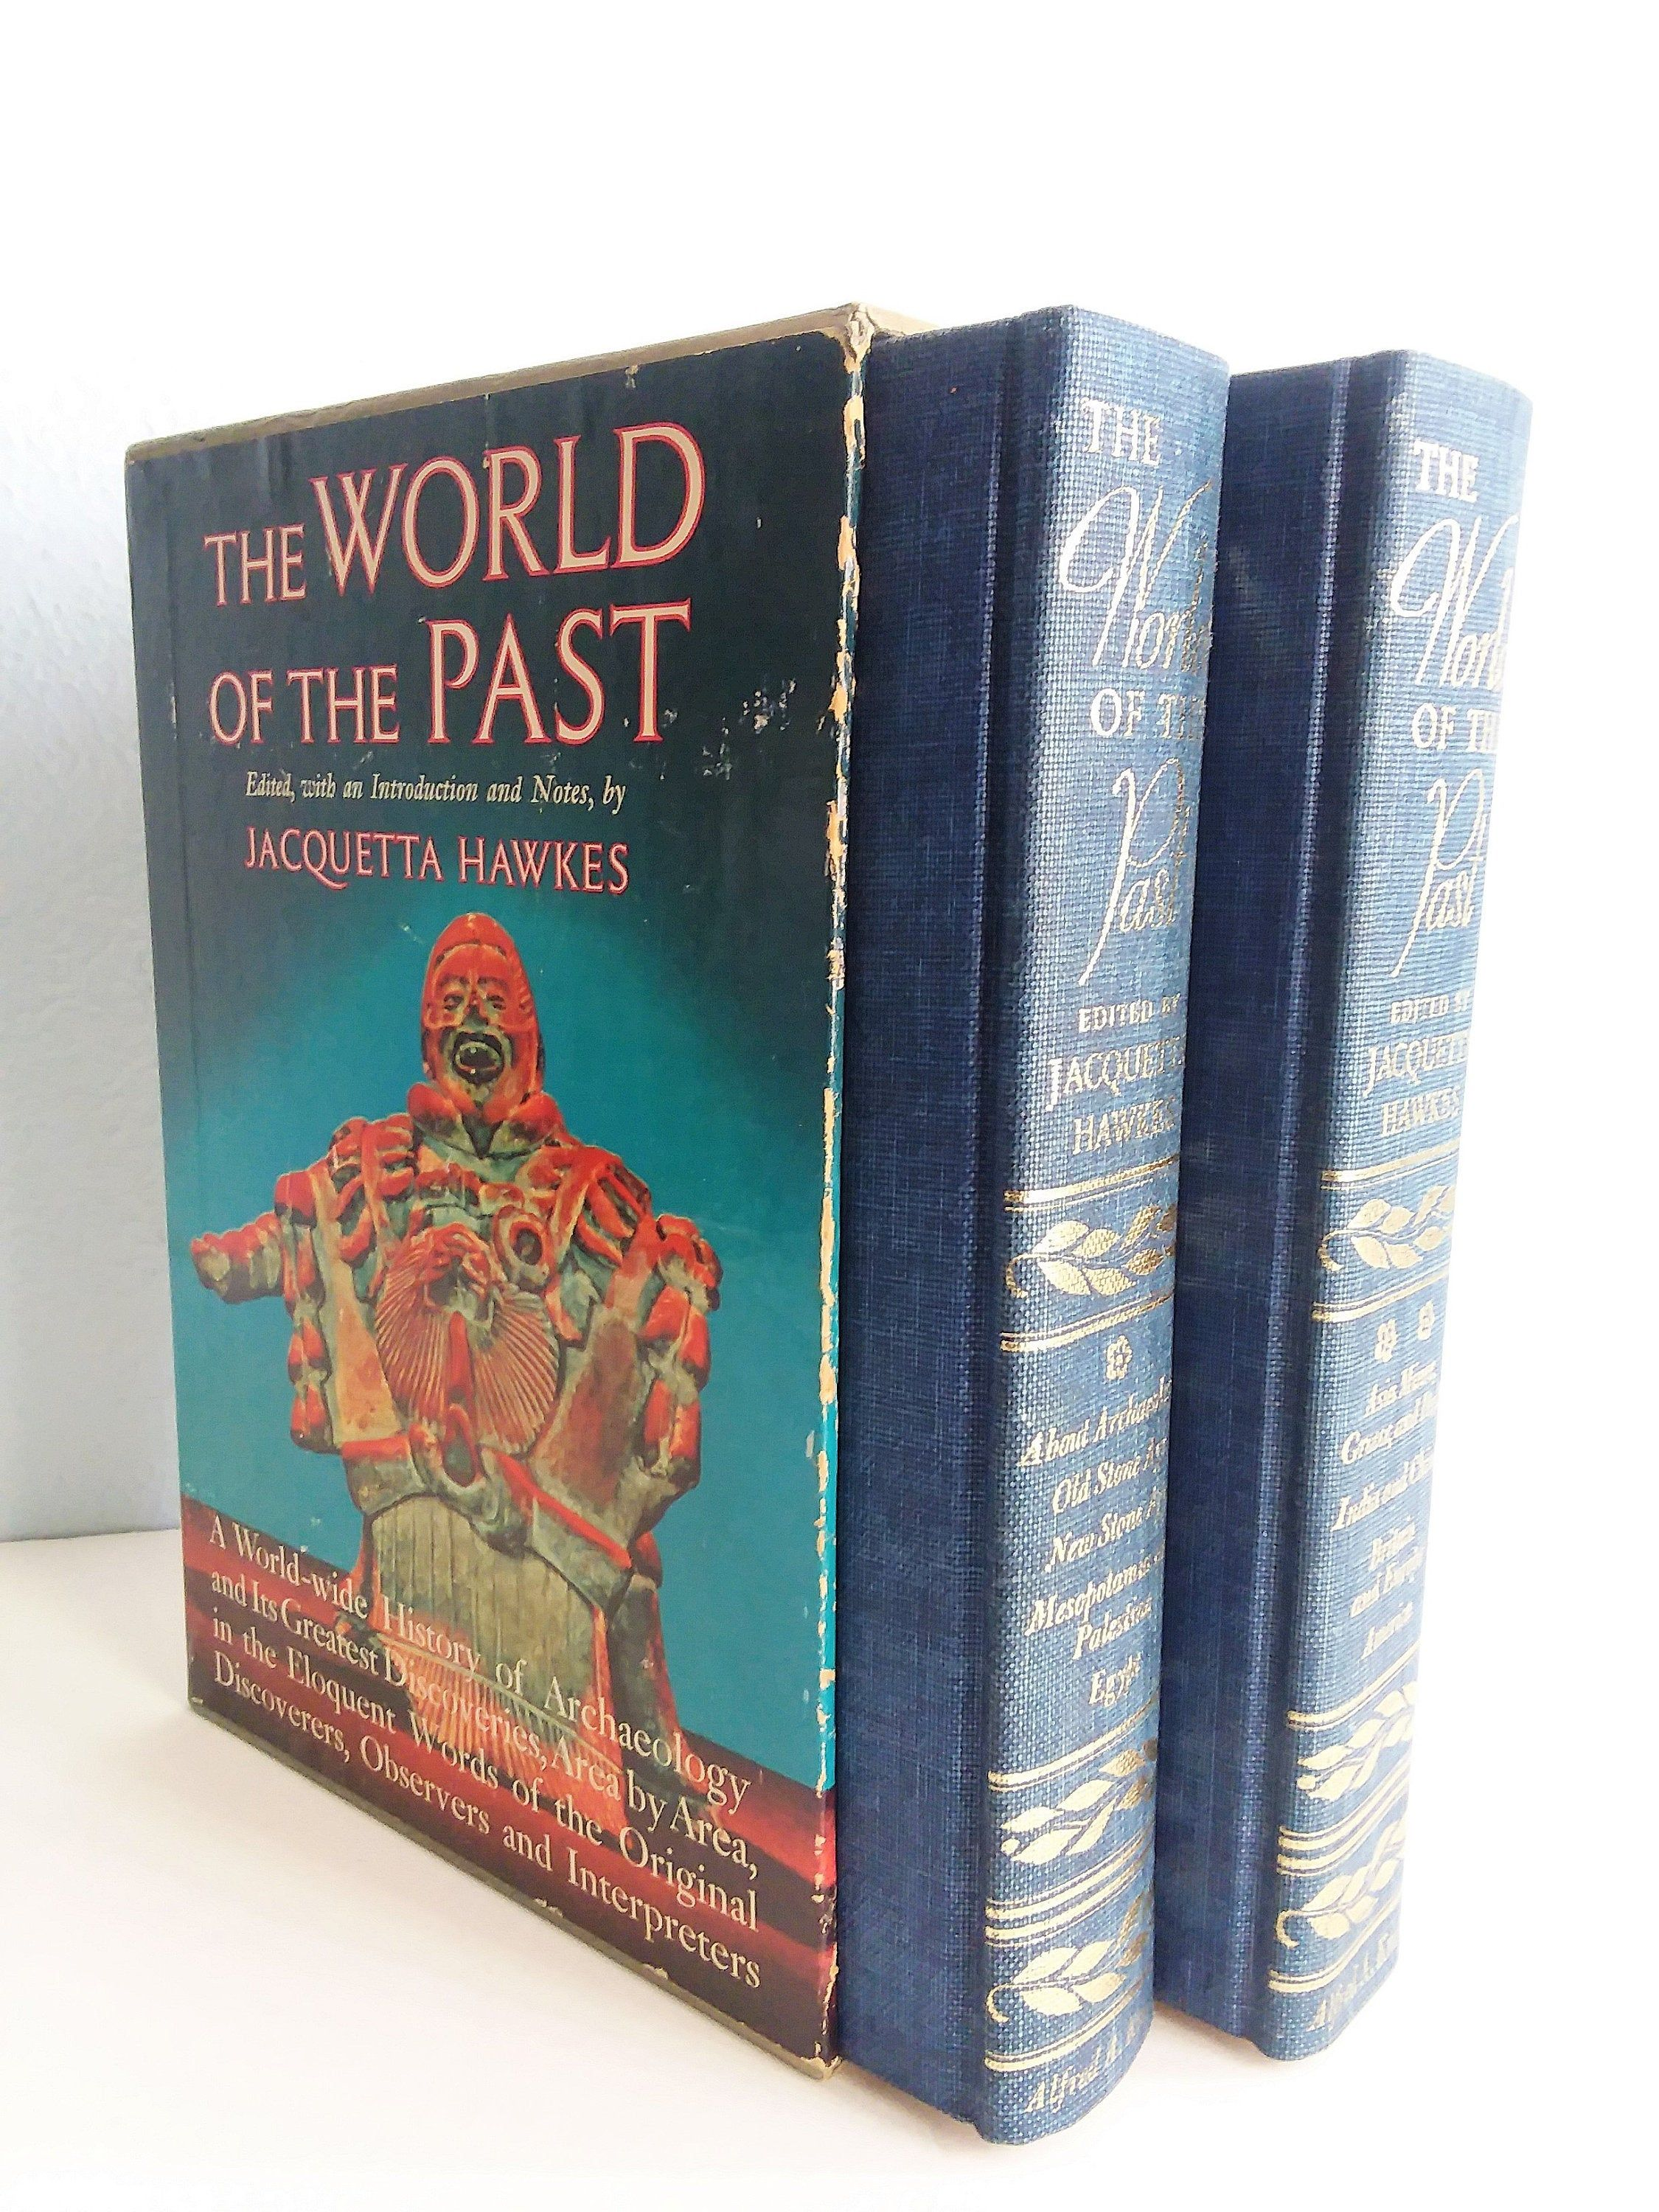 1963 Vintage Book Box Set Archeology Themed Title The World Of The Past 2 Volume Gift Set On World History Archeology And Discoveries In 2020 Book Box Vintage Book Boxset